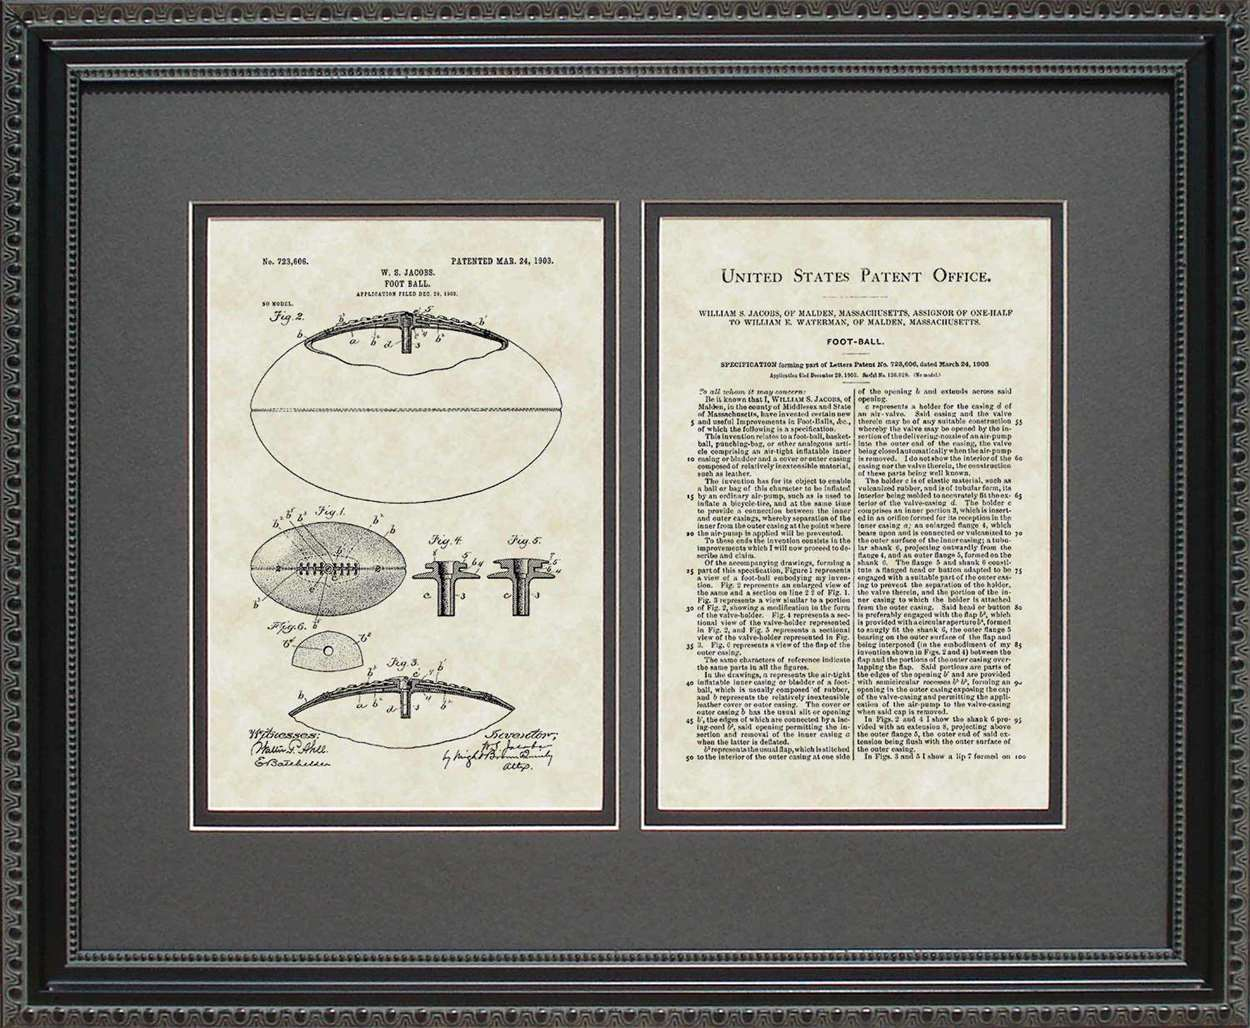 Football Patent, Art & Copy, Jacobs, 1903, 16x20